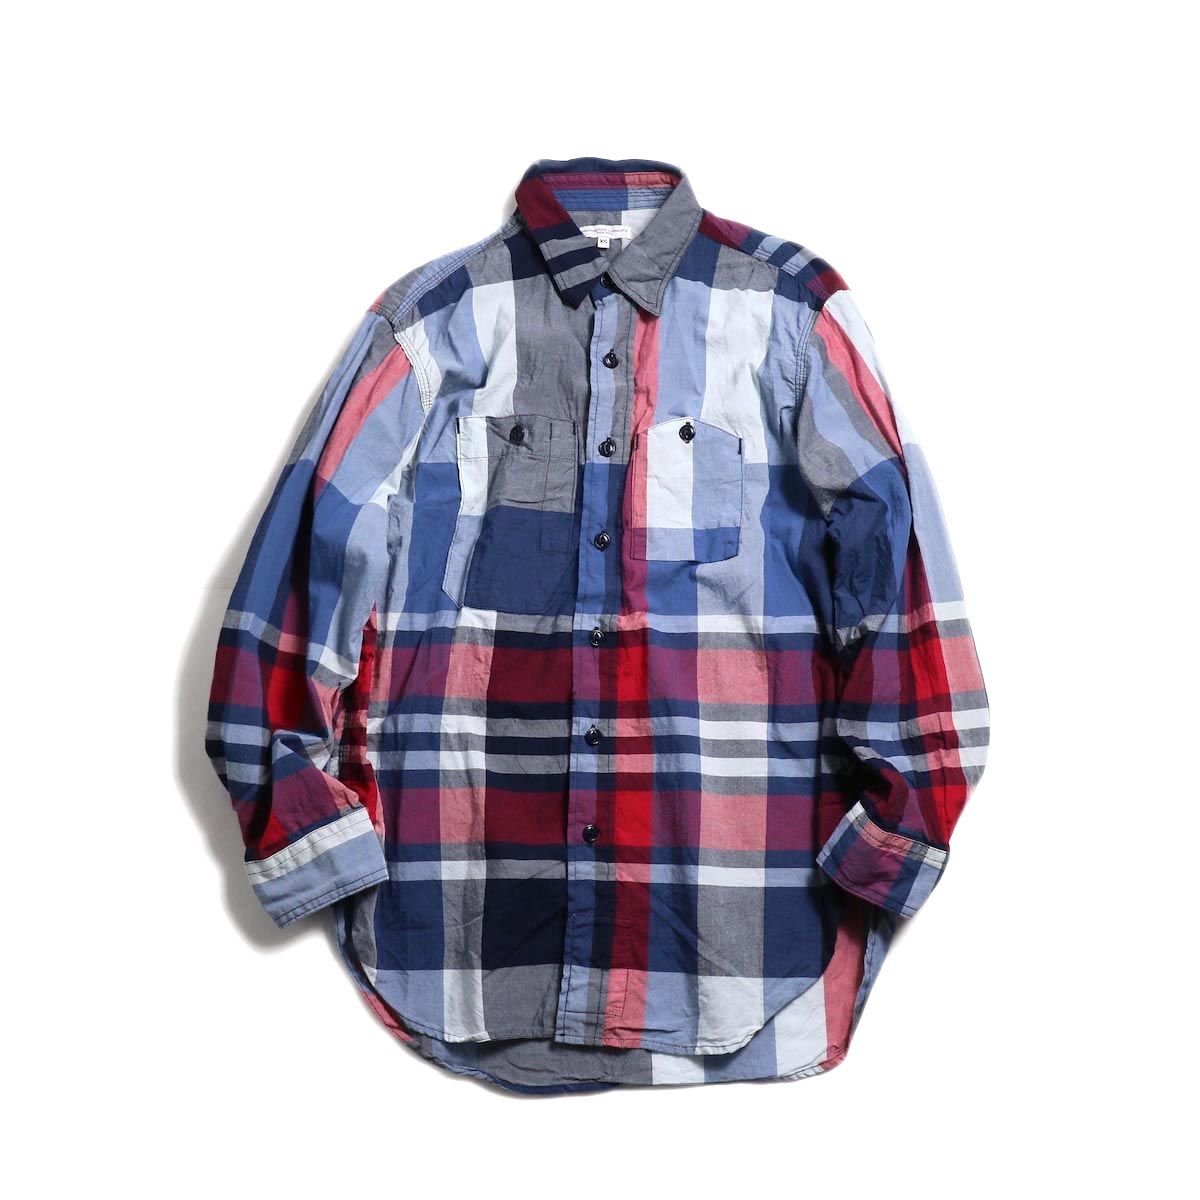 ENGINEERED GARMENTS / Work Shirt -Big Madras Plaid (Navy/Red)